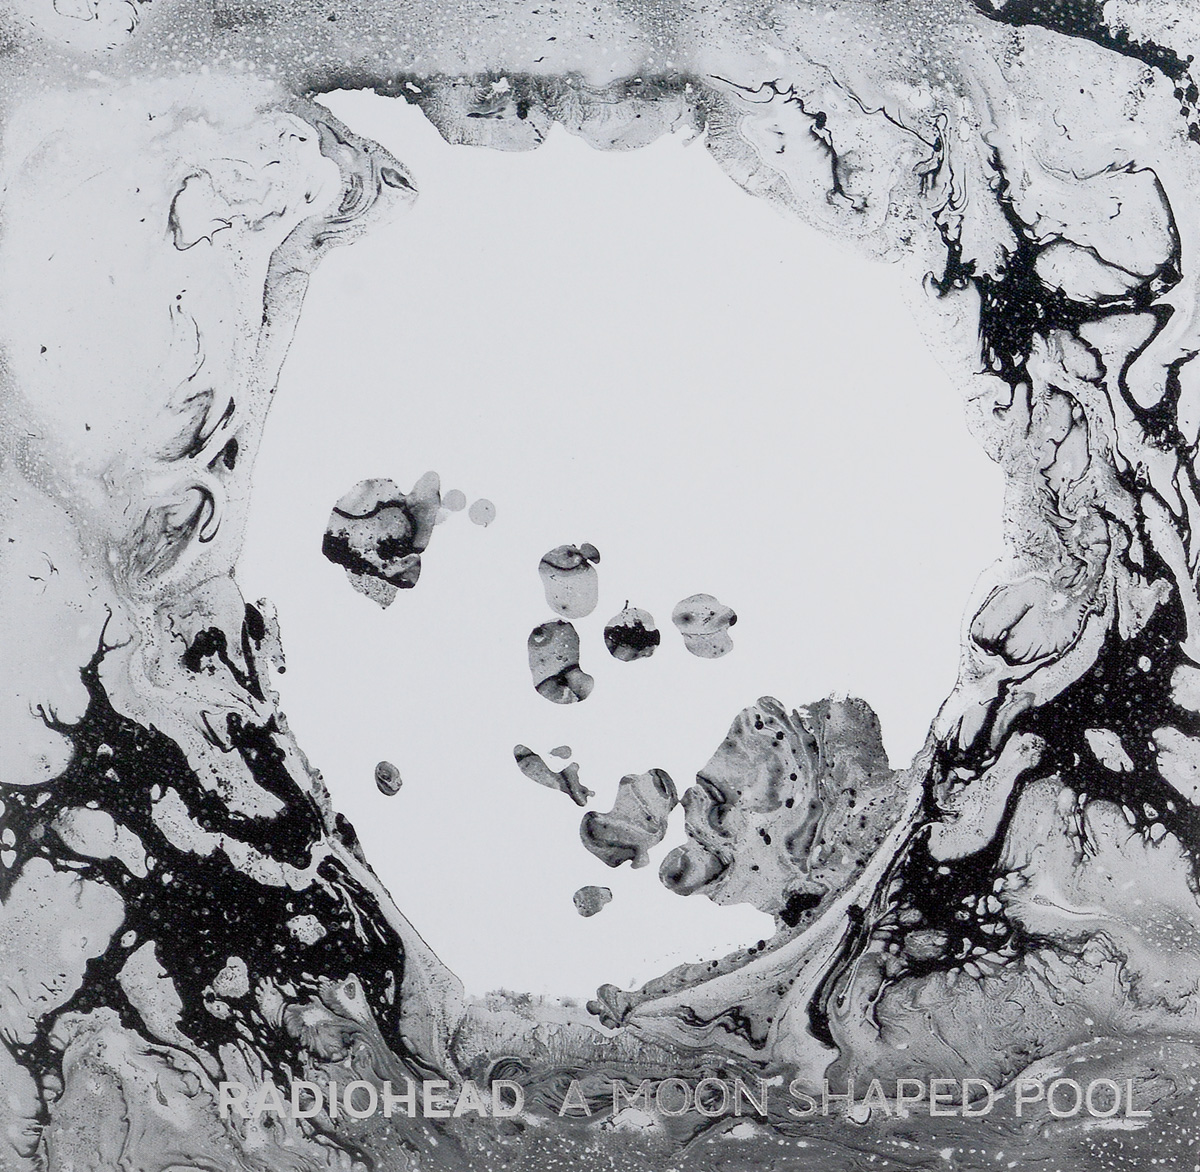 Radiohead Radiohead. A Moon Shaped Pool бита ryobi rak15ssdc